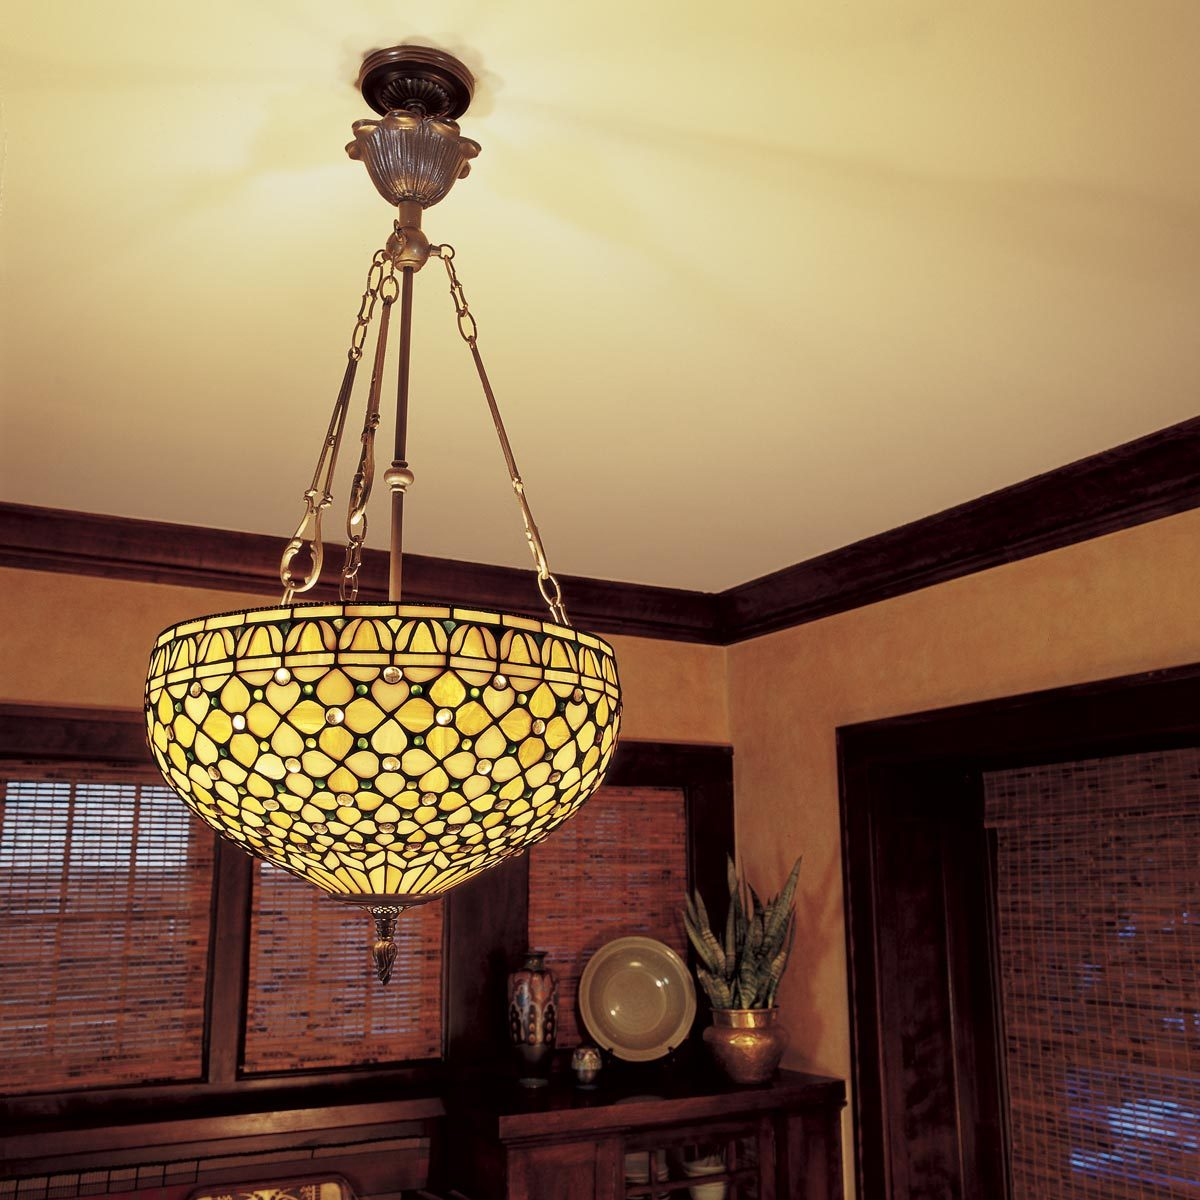 Lamp Method Price How To Hang A Ceiling Light Fixture Family Handyman